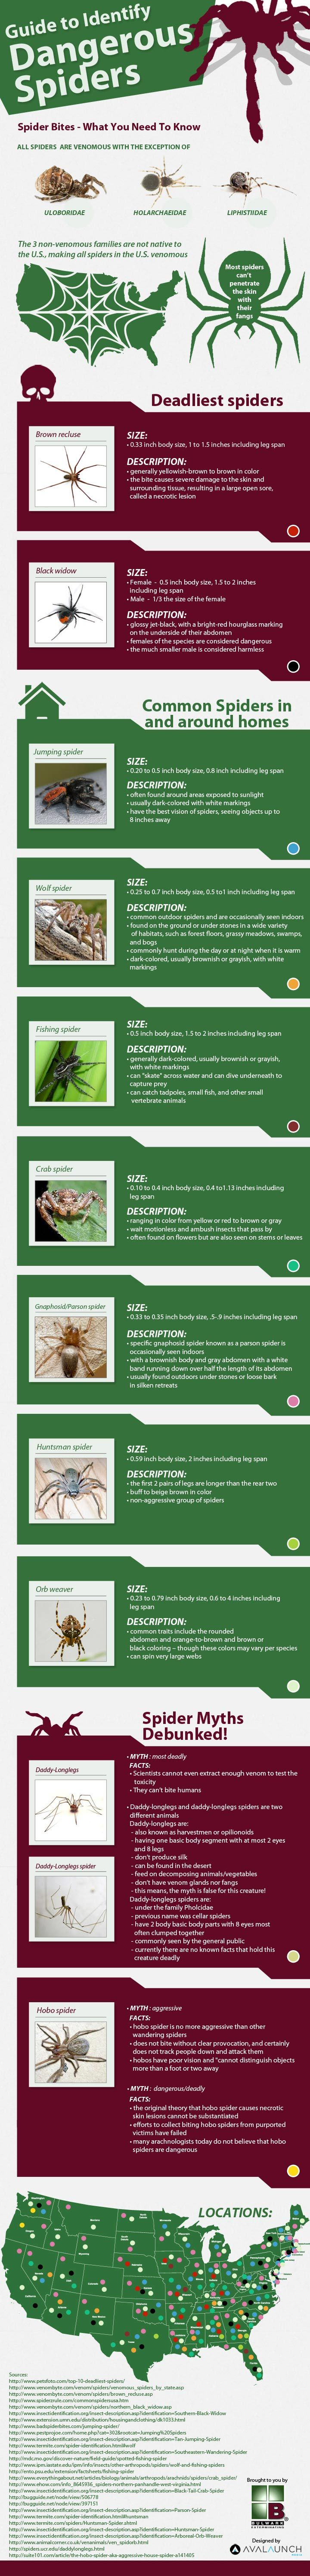 Is That Spider Dangerous? Spider Identification Guide: Health Interesting, Includ Specif, Bites Identification, Identification Charts, Spiders Identification, Danger Spiders, I Hate Spiders, Spiders Bites, Spiders Charts